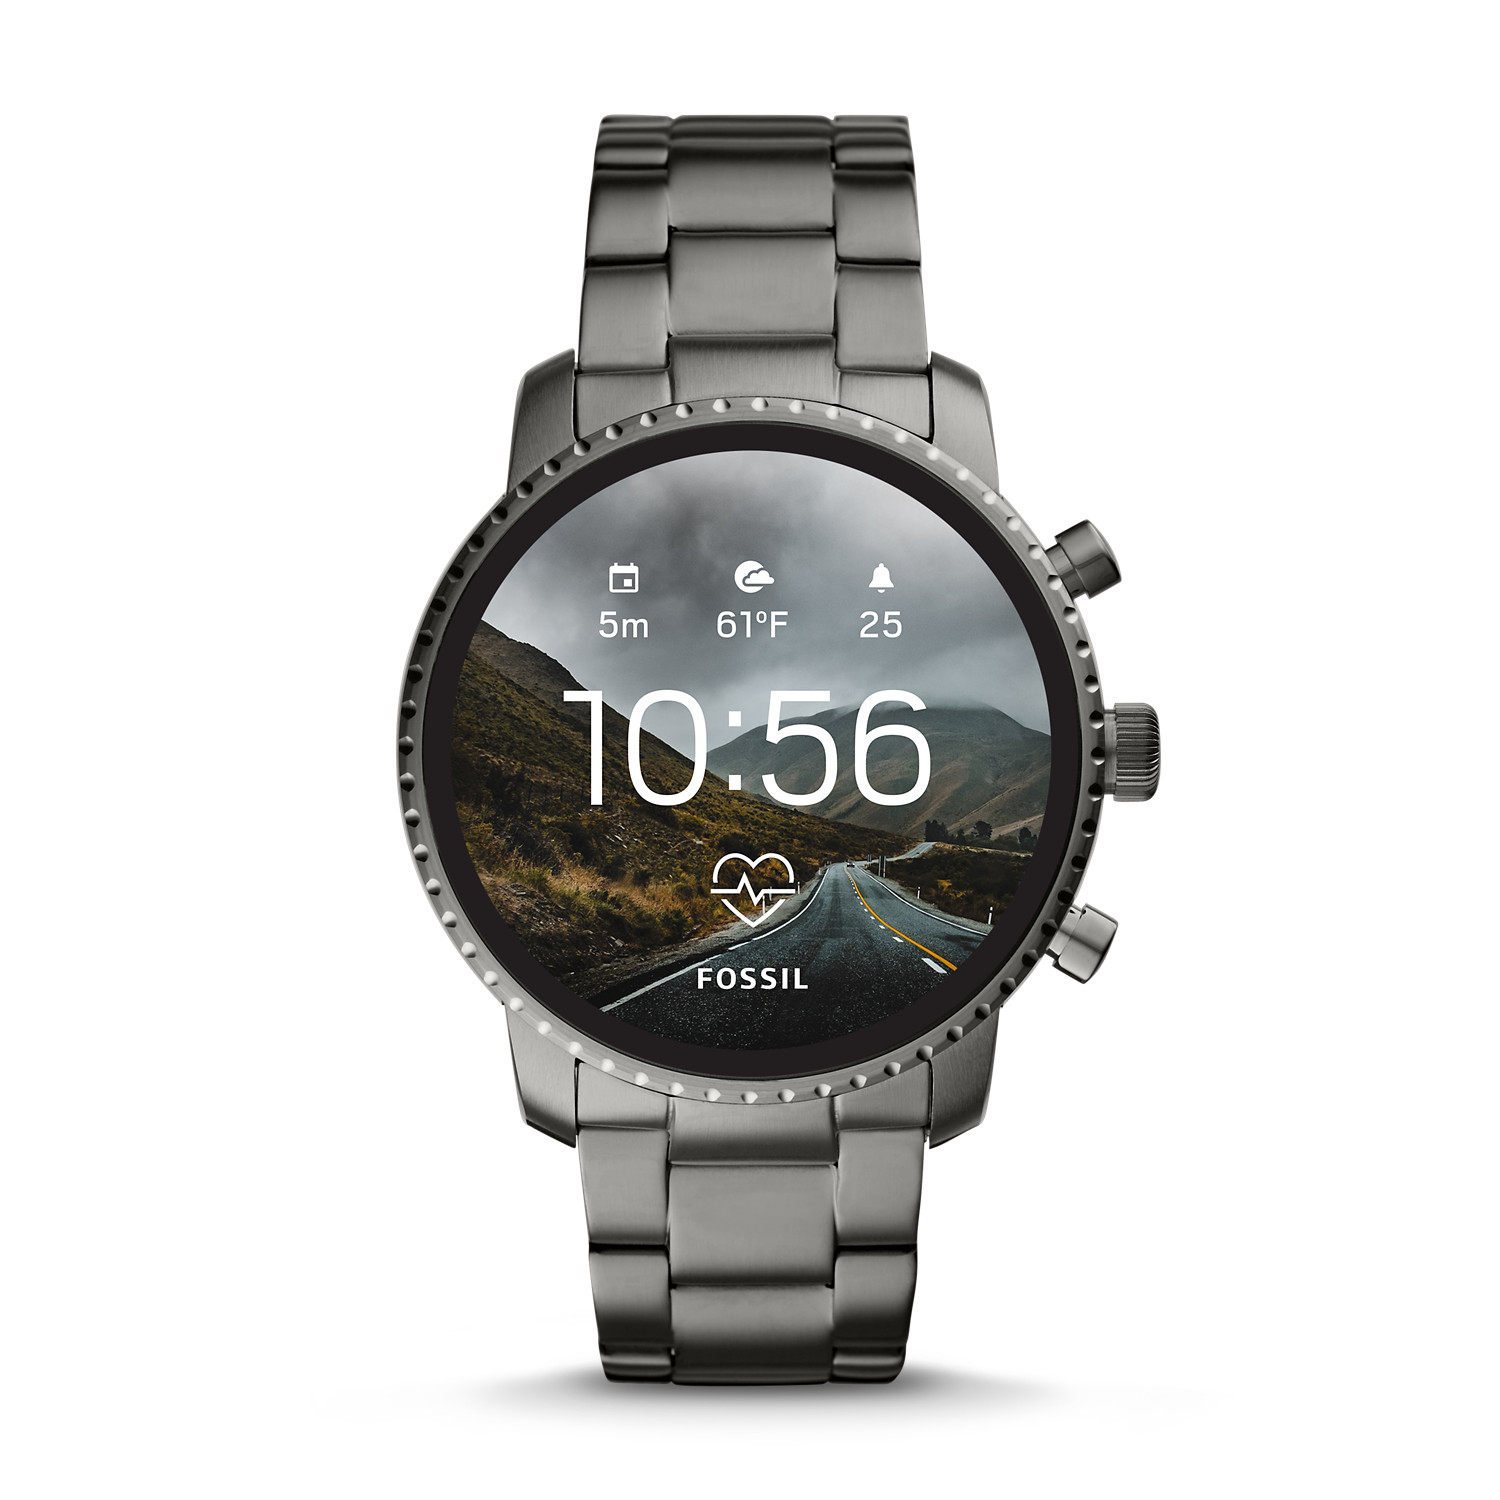 c146627232f1 Gen 4 Smartwatch - Explorist HR Smoke Stainless Steel - Fossil